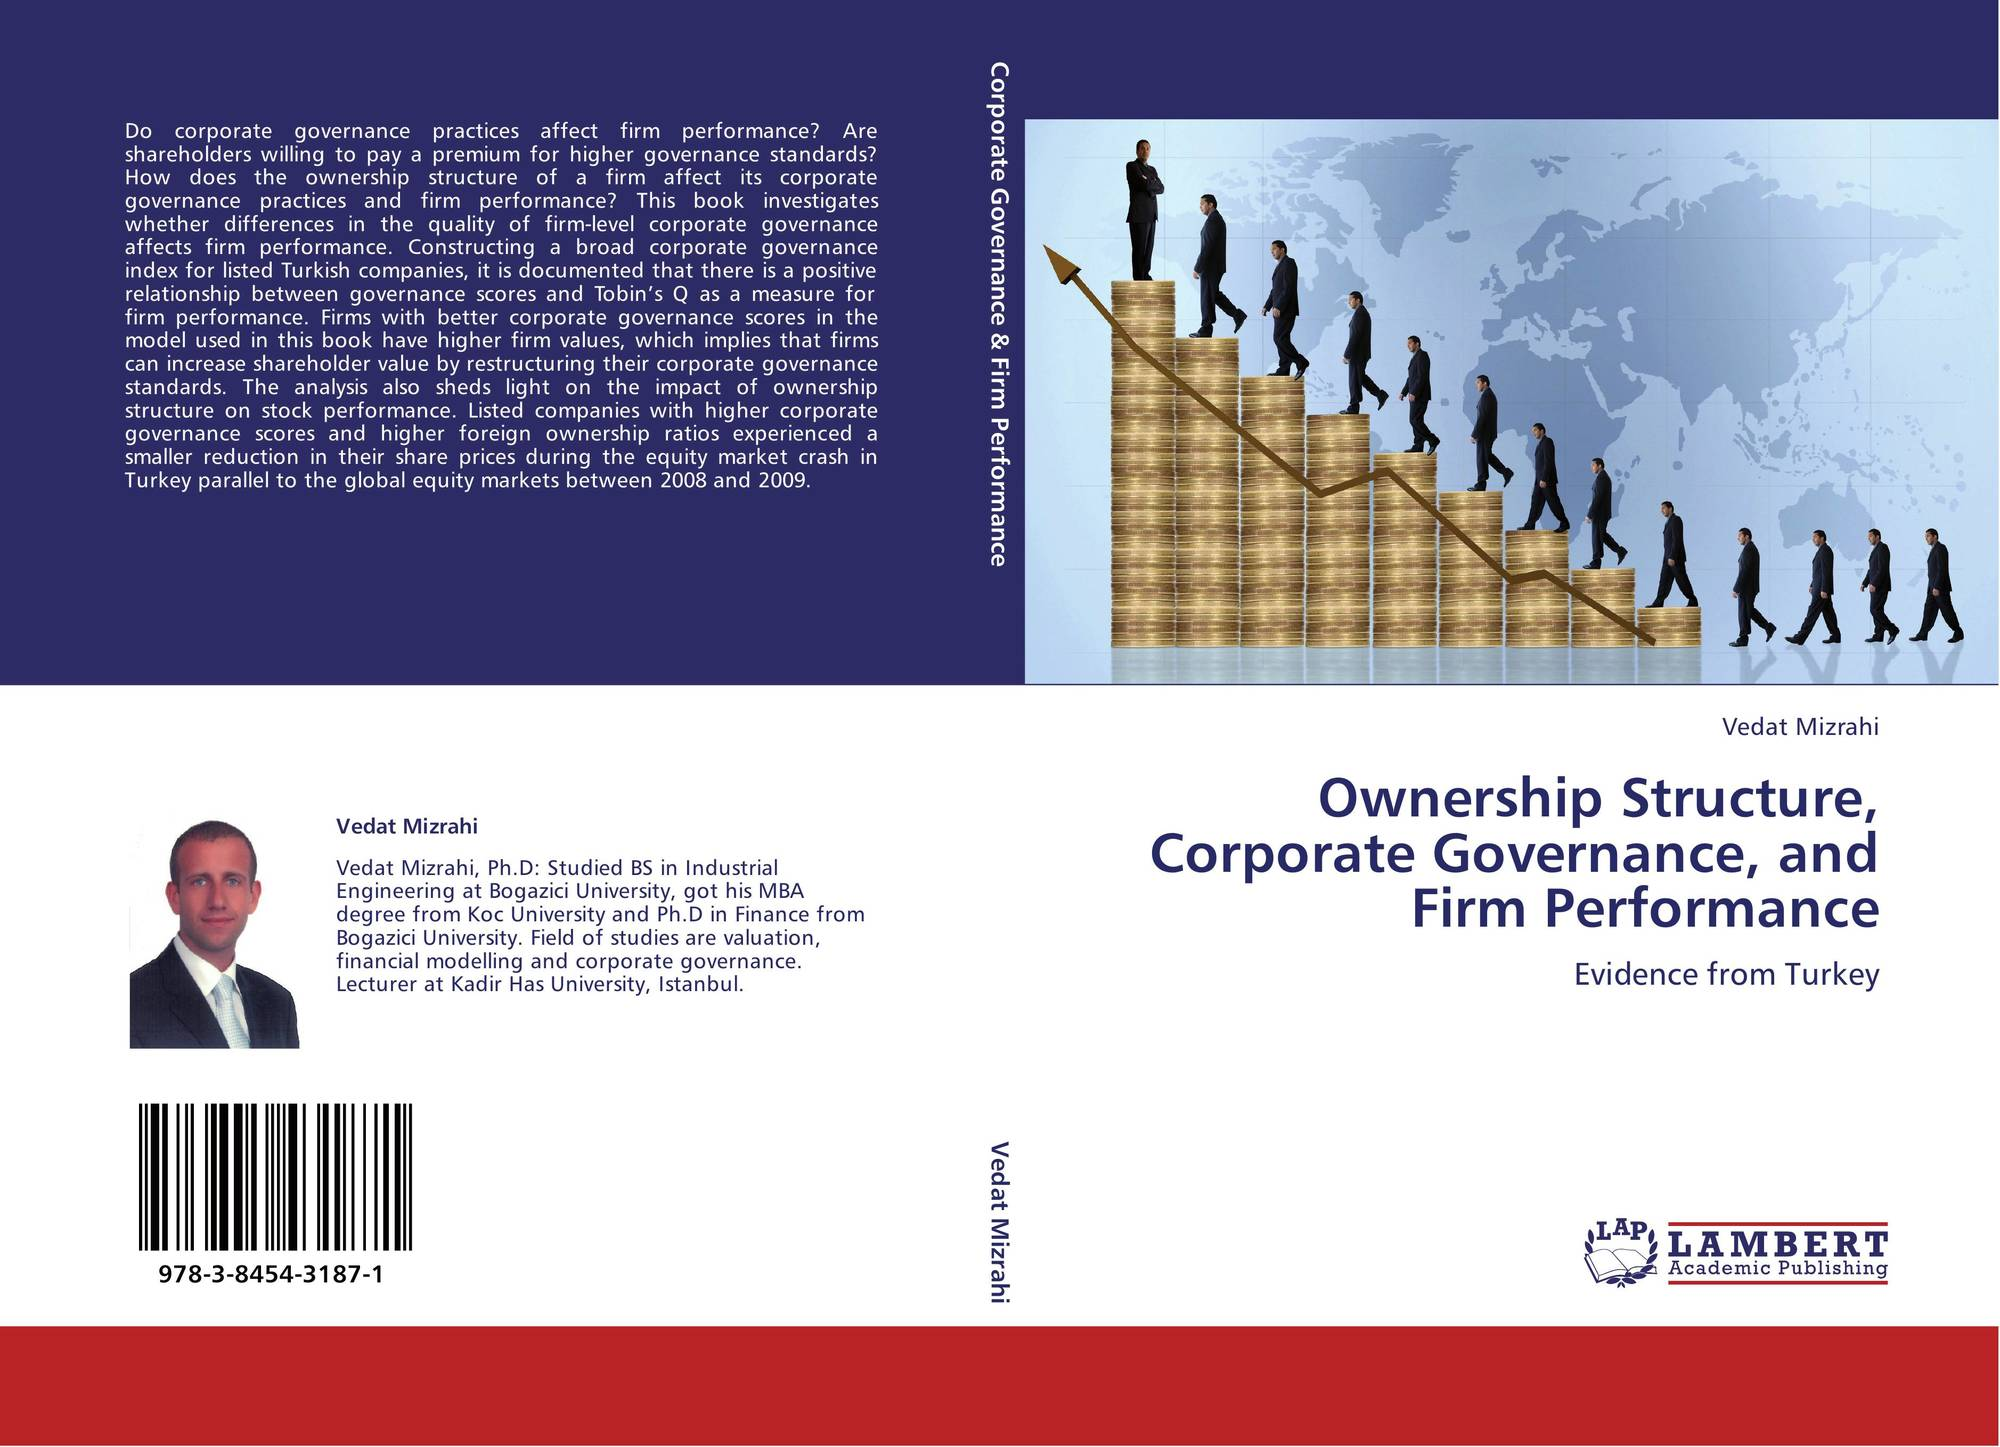 does corporate governance enhance firm performance The board composition index and ownership and shareholdings index enhance firm performance, where as disclosure and transparency index has no significant effect on firm performance however we point out those adequate firm-level governance standards which can not replace the solidity of the firm.